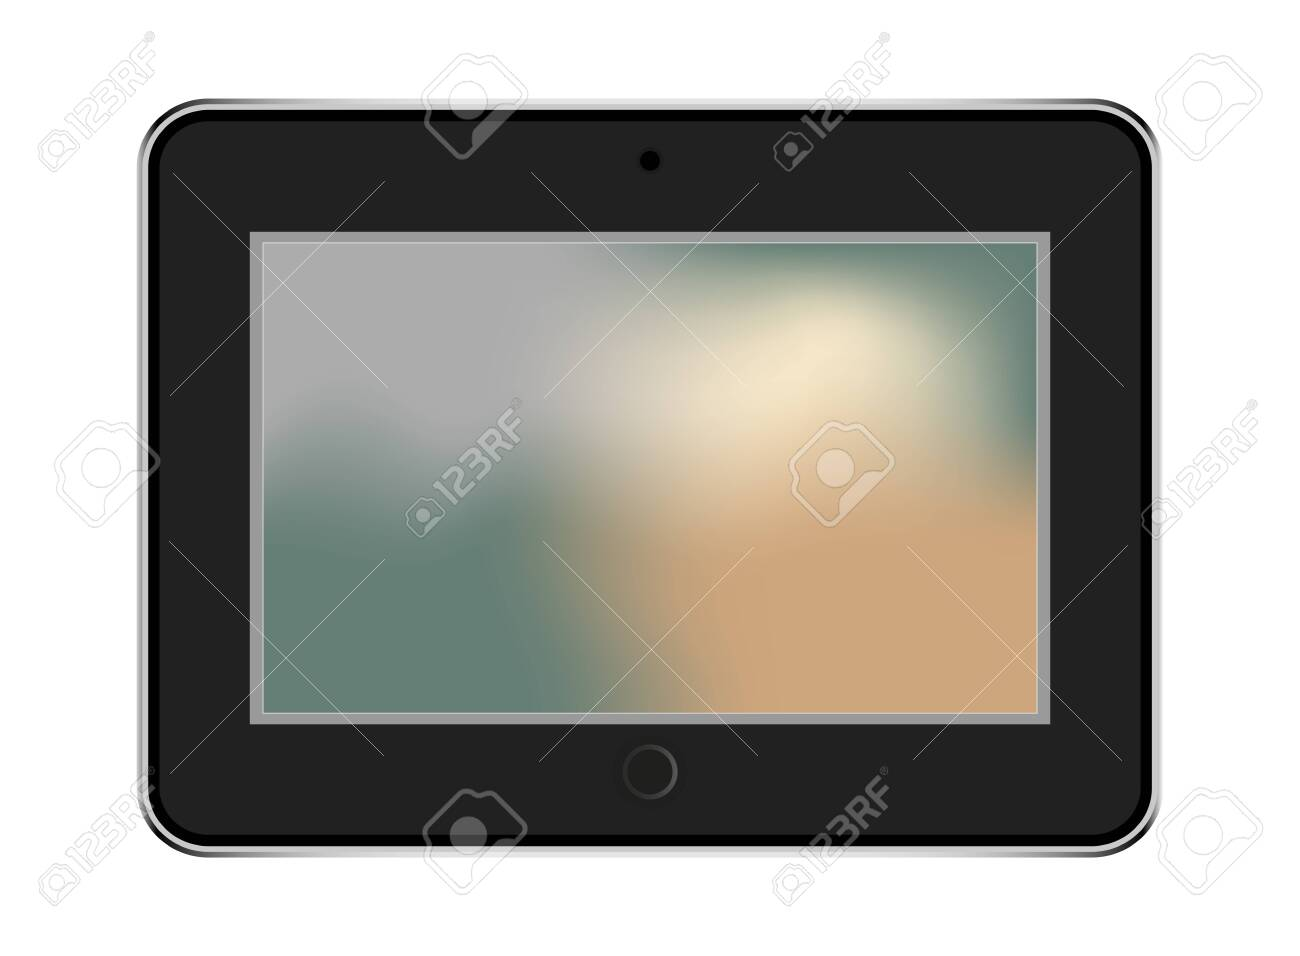 tablet in style black color with trending backgrounds - 151541341